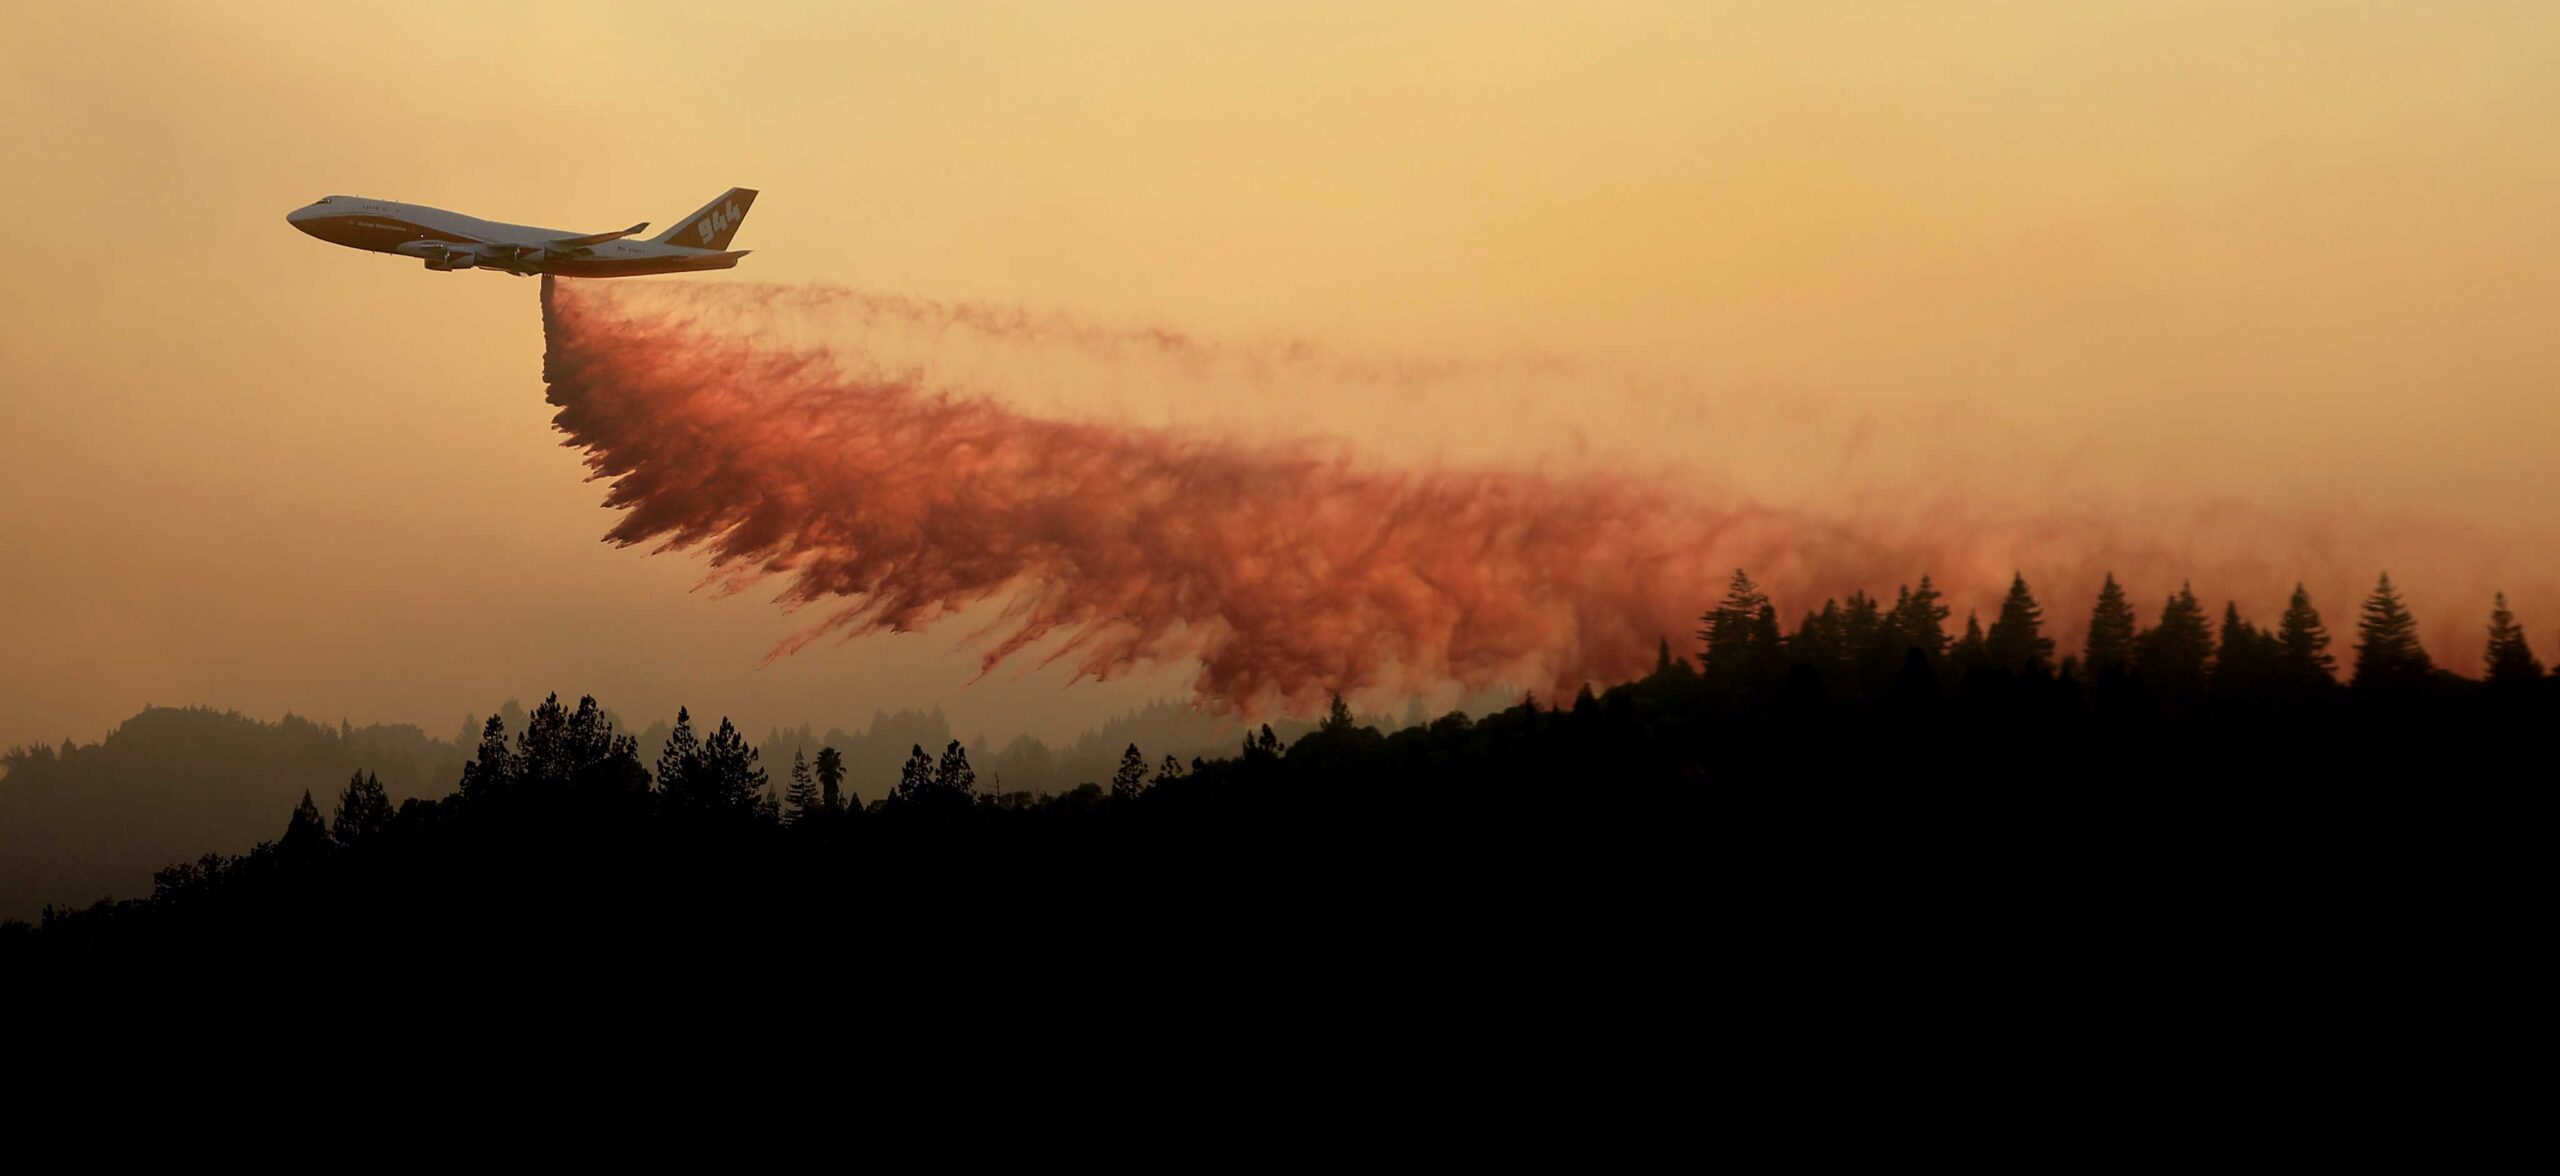 The Global Super Tanker makes an appearance over Dry Creek Valley